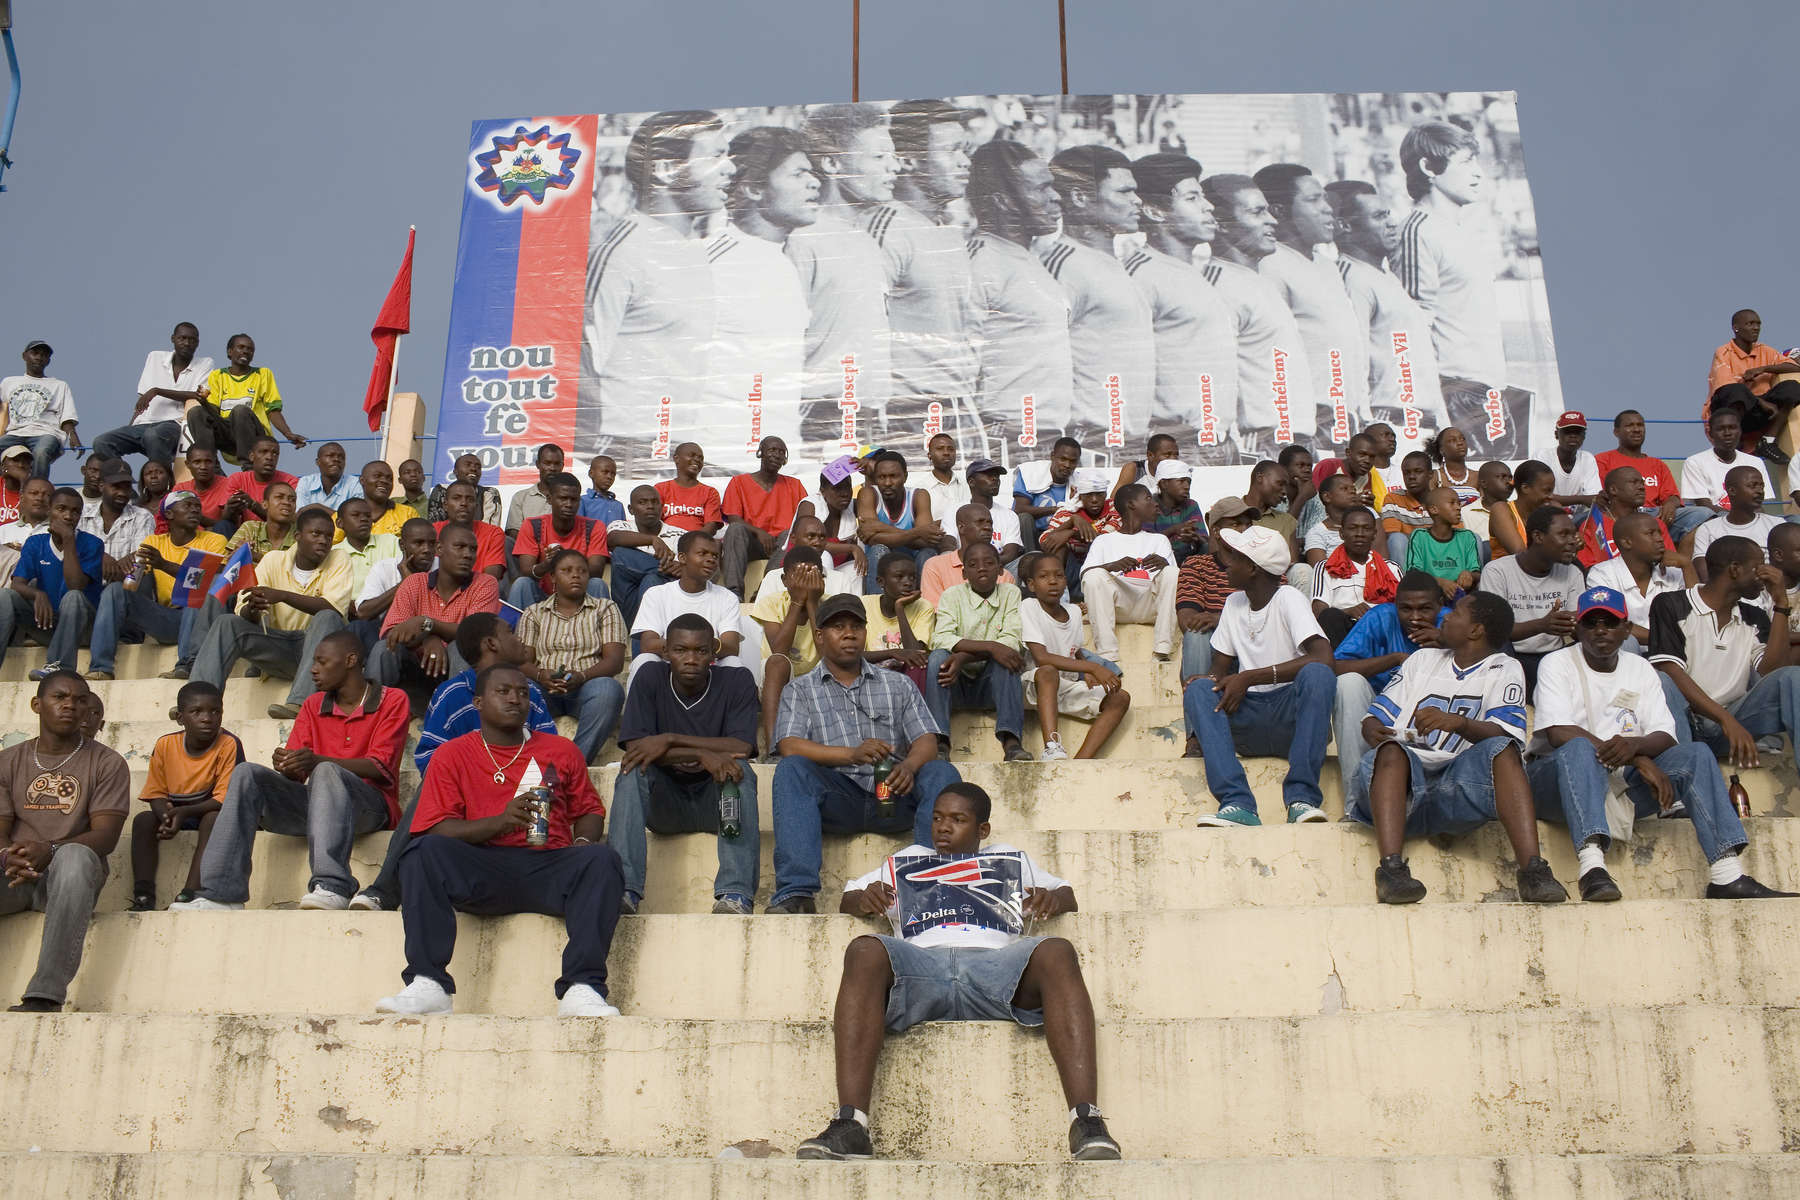 Haitian football fans watch the national under 17 team achieve victory over older boys playing for the USA's Cleveland Cavaliers. The poster shows the team that qualified In 1974 for a place at the World Cup Finals. 33 revolutionary years later the impoverished country's under 17 team played at the FIFA U-17 World Cup Finals in South Korea.In disaster areas, war zones and urban wastelands, football keeps humanity alive. It brings nations together and promotes unity. It encourages equality and generates pride and self-belief. It has the power to heal and to help, to motivate, to give freedom to dreams and empower a generation. There are millions of people playing the game or helping it to flourish who find that football brings a positive dimension to their lives.Away from the billionaire owned clubs with it's multi-million dollar players, Football's Hidden Story is a series of emotive human interest photographs showing the positive impact football has had at grassroot level on individuals and communities all around the world.